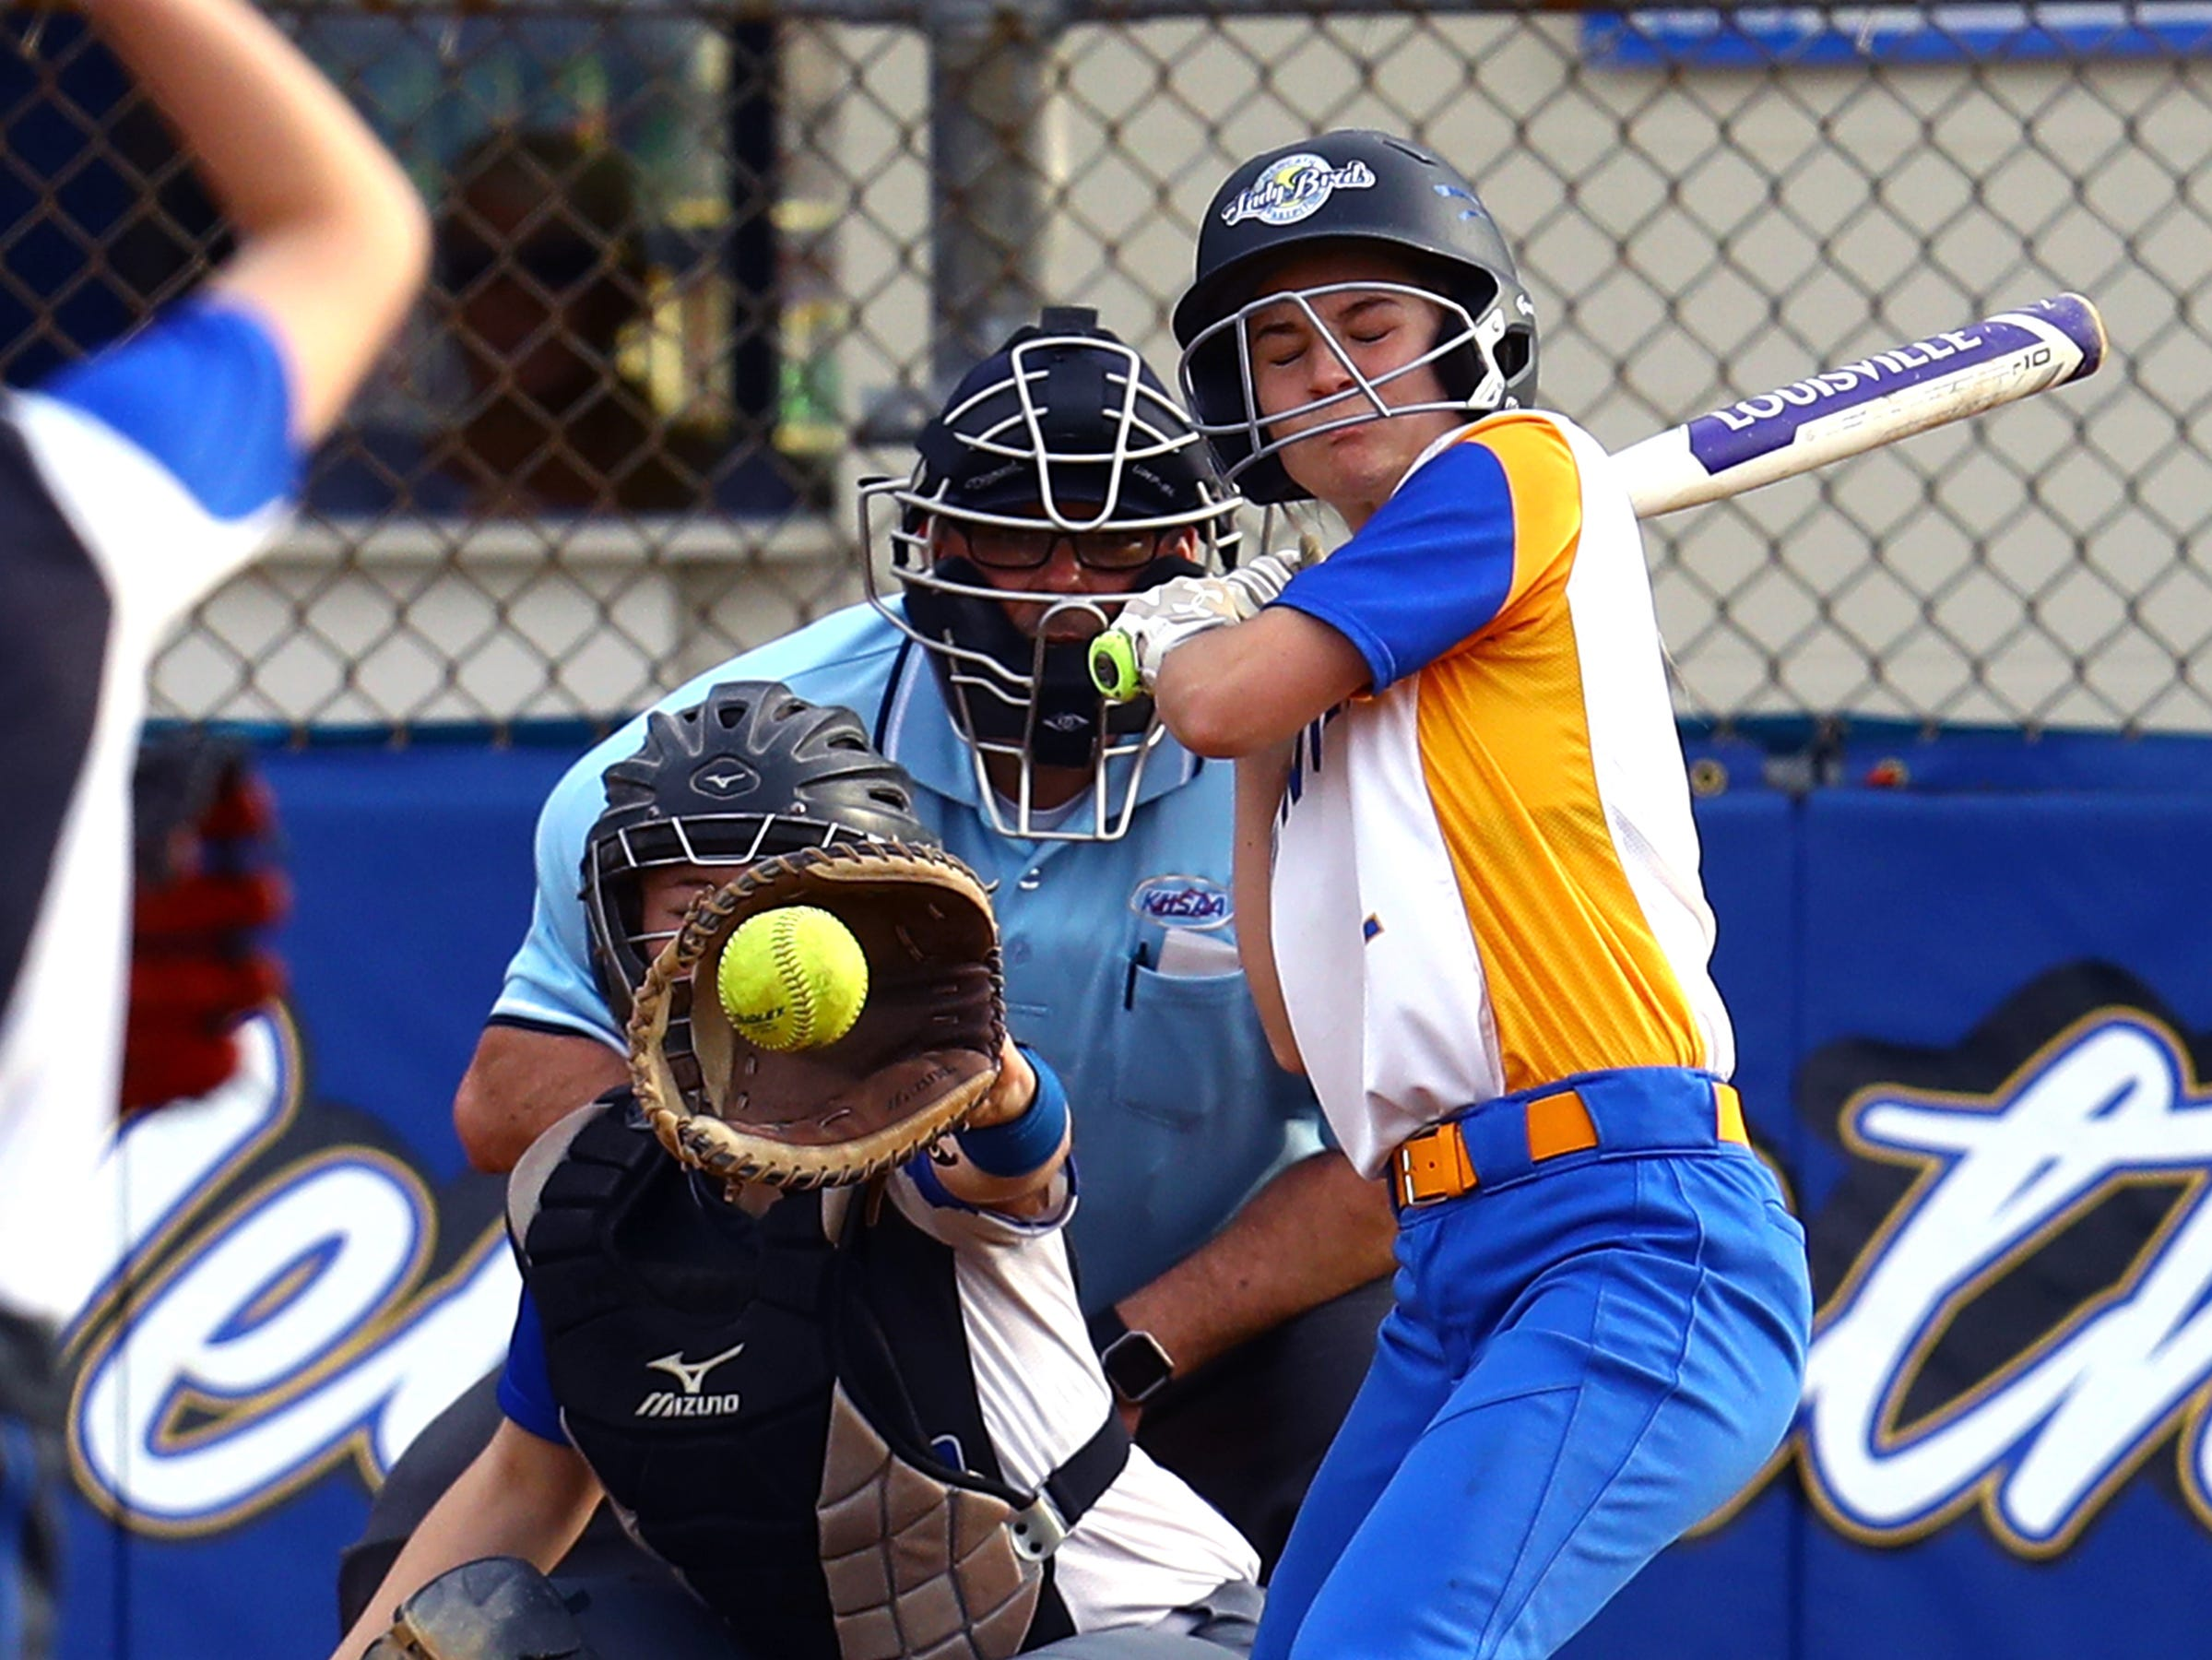 Newport Central Catholic batter Bailey Gray bats against Highlands. Highlands defeated Newport Central Catholic 9-0.